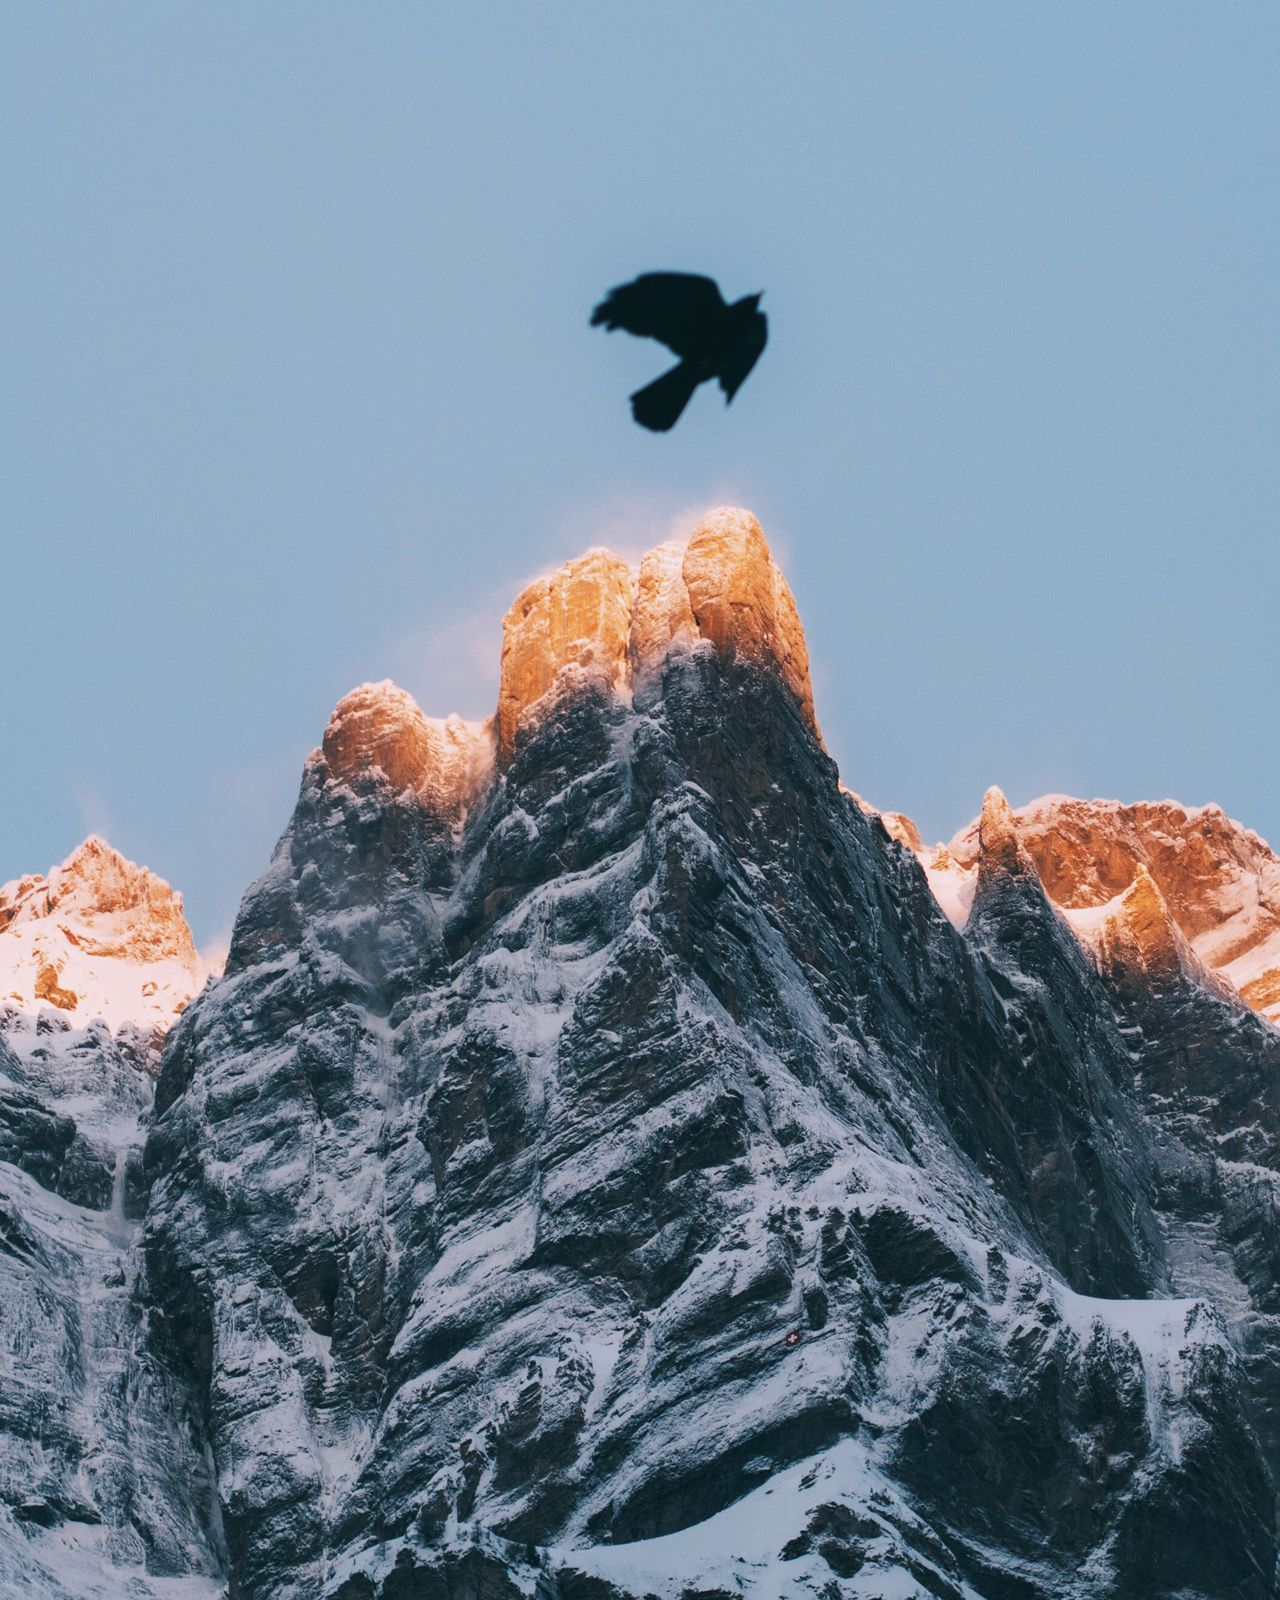 Snow Mountain Low Angle View Animals In The Wild Bird Nature Cold Temperature Rock - Object Clear Sky Mountain Range Day Physical Geography Outdoors Beauty In Nature No People Animal Themes Mountain Peak Scenics Rocky Mountains Winter Sunrise Light Rock Glow Morning